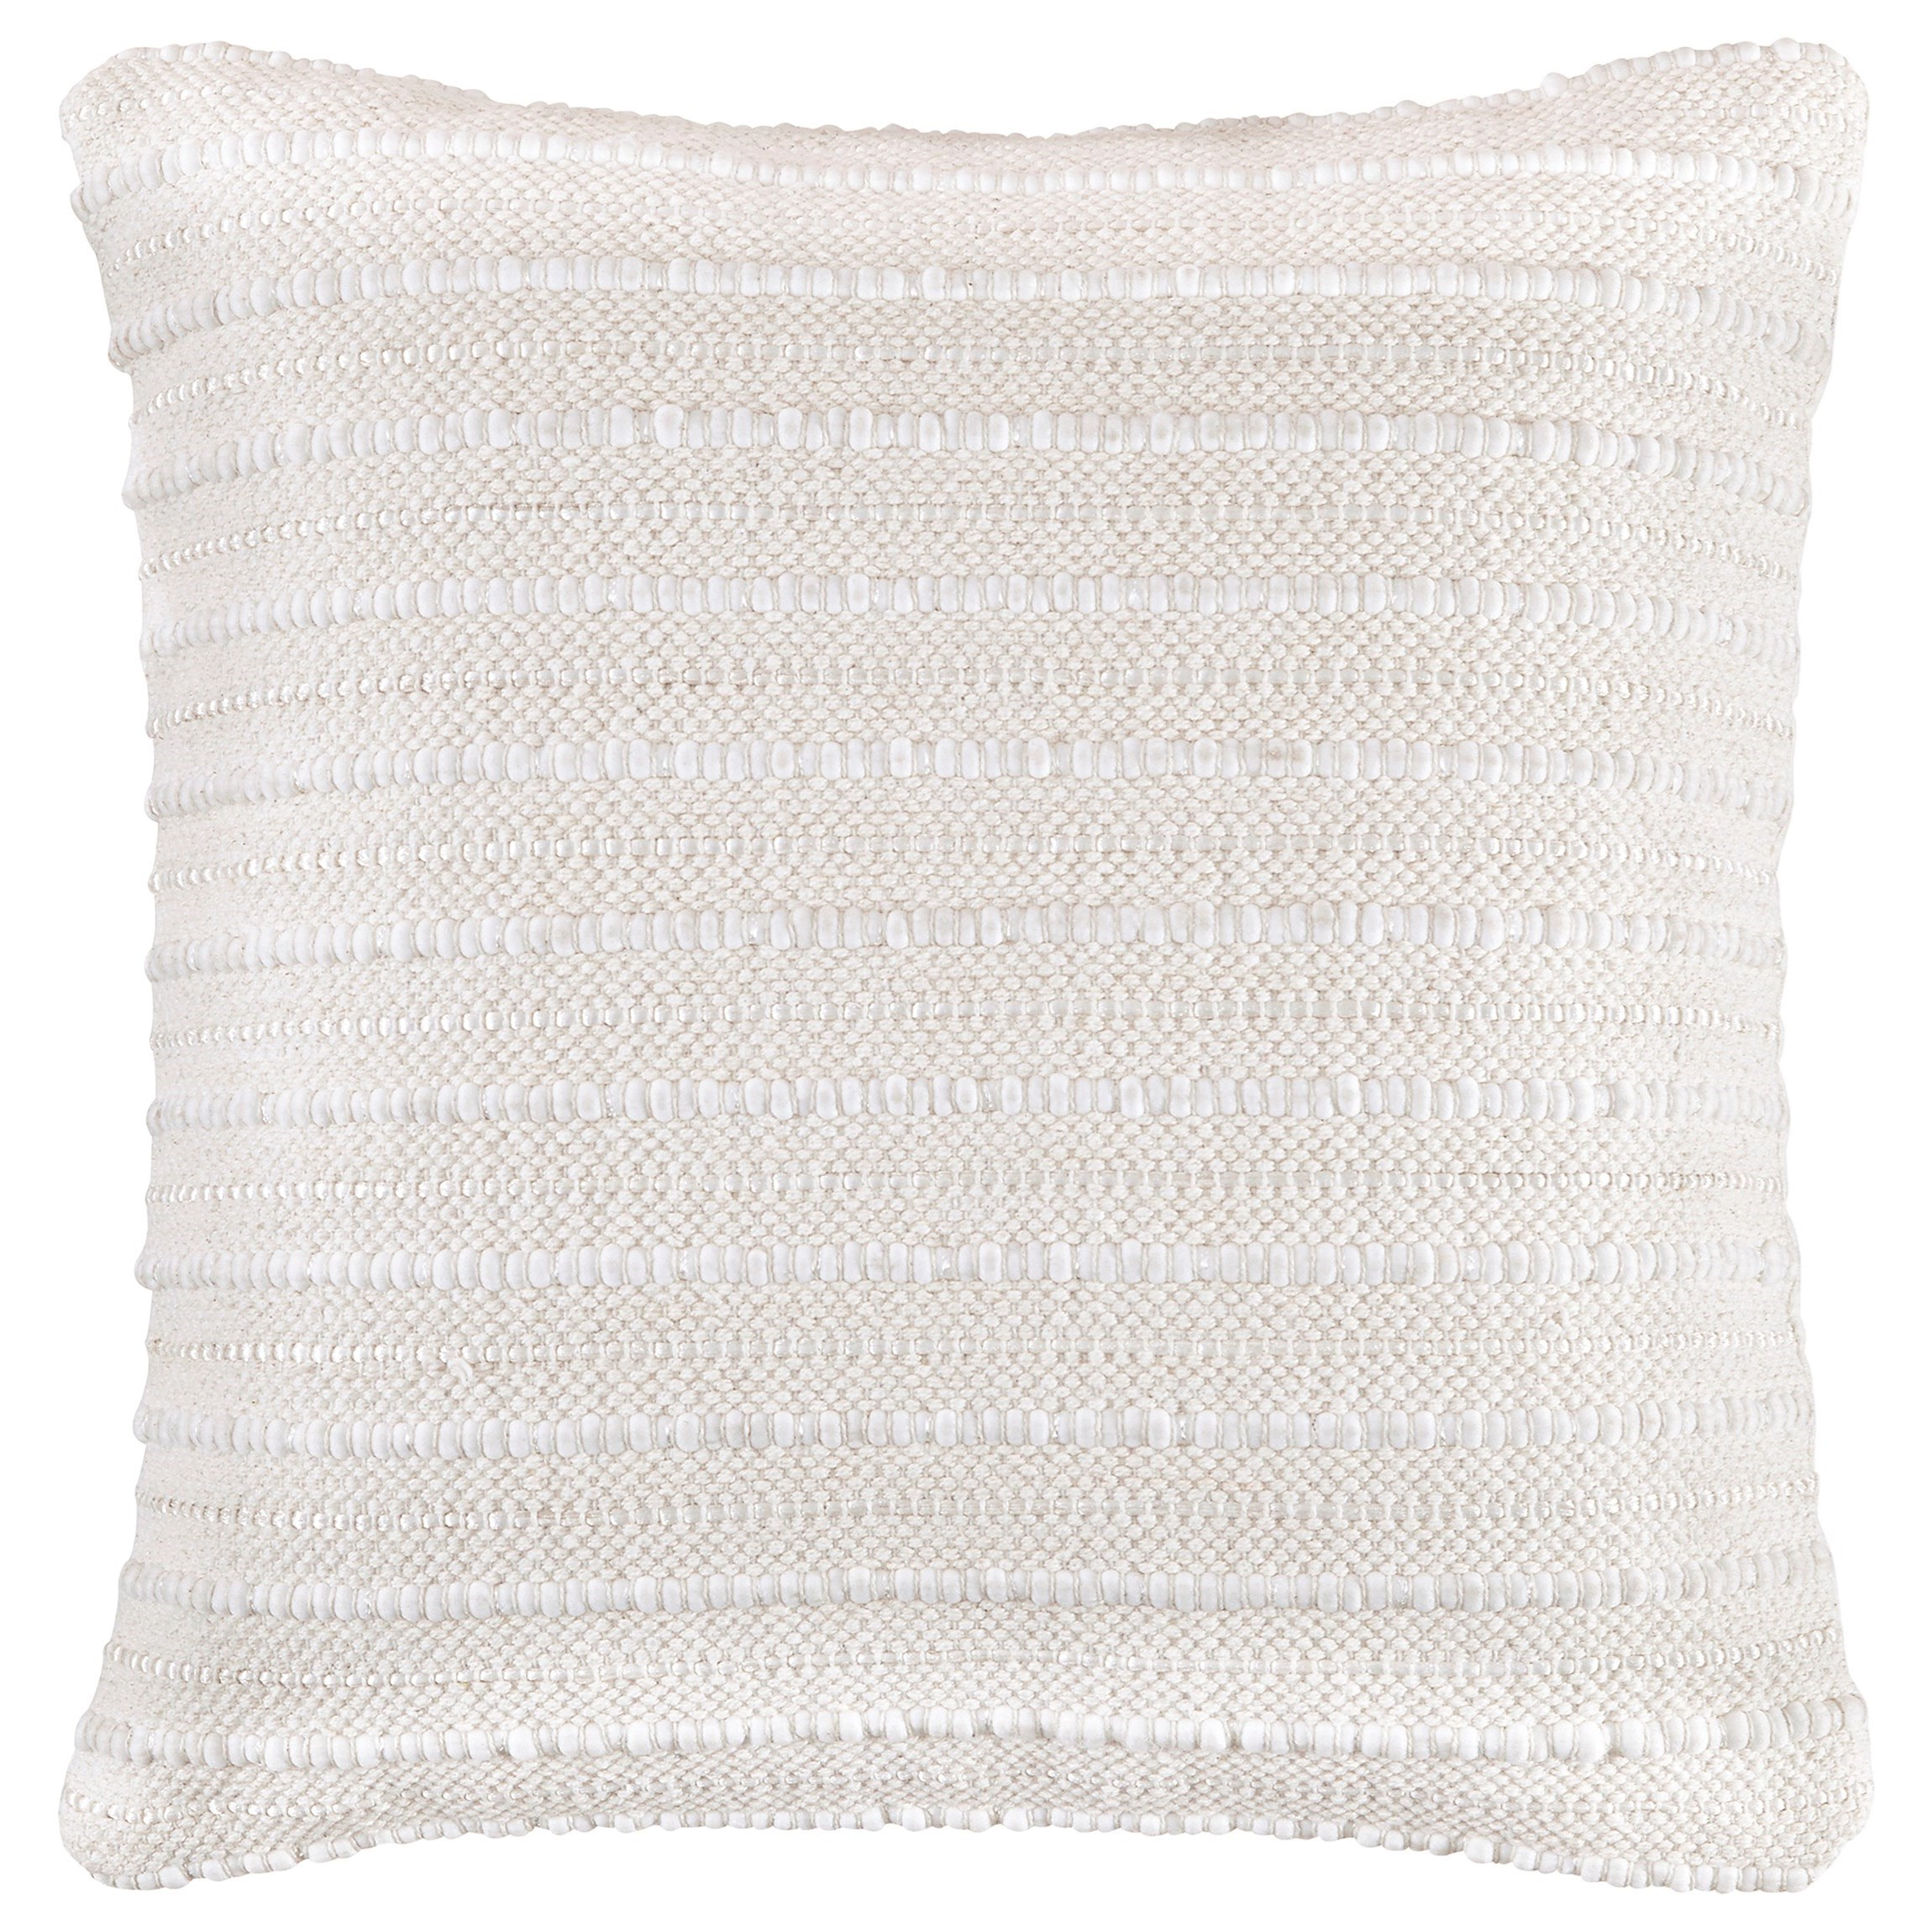 Pillows Theban Cream Pillow by Signature Design by Ashley at Zak's Warehouse Clearance Center